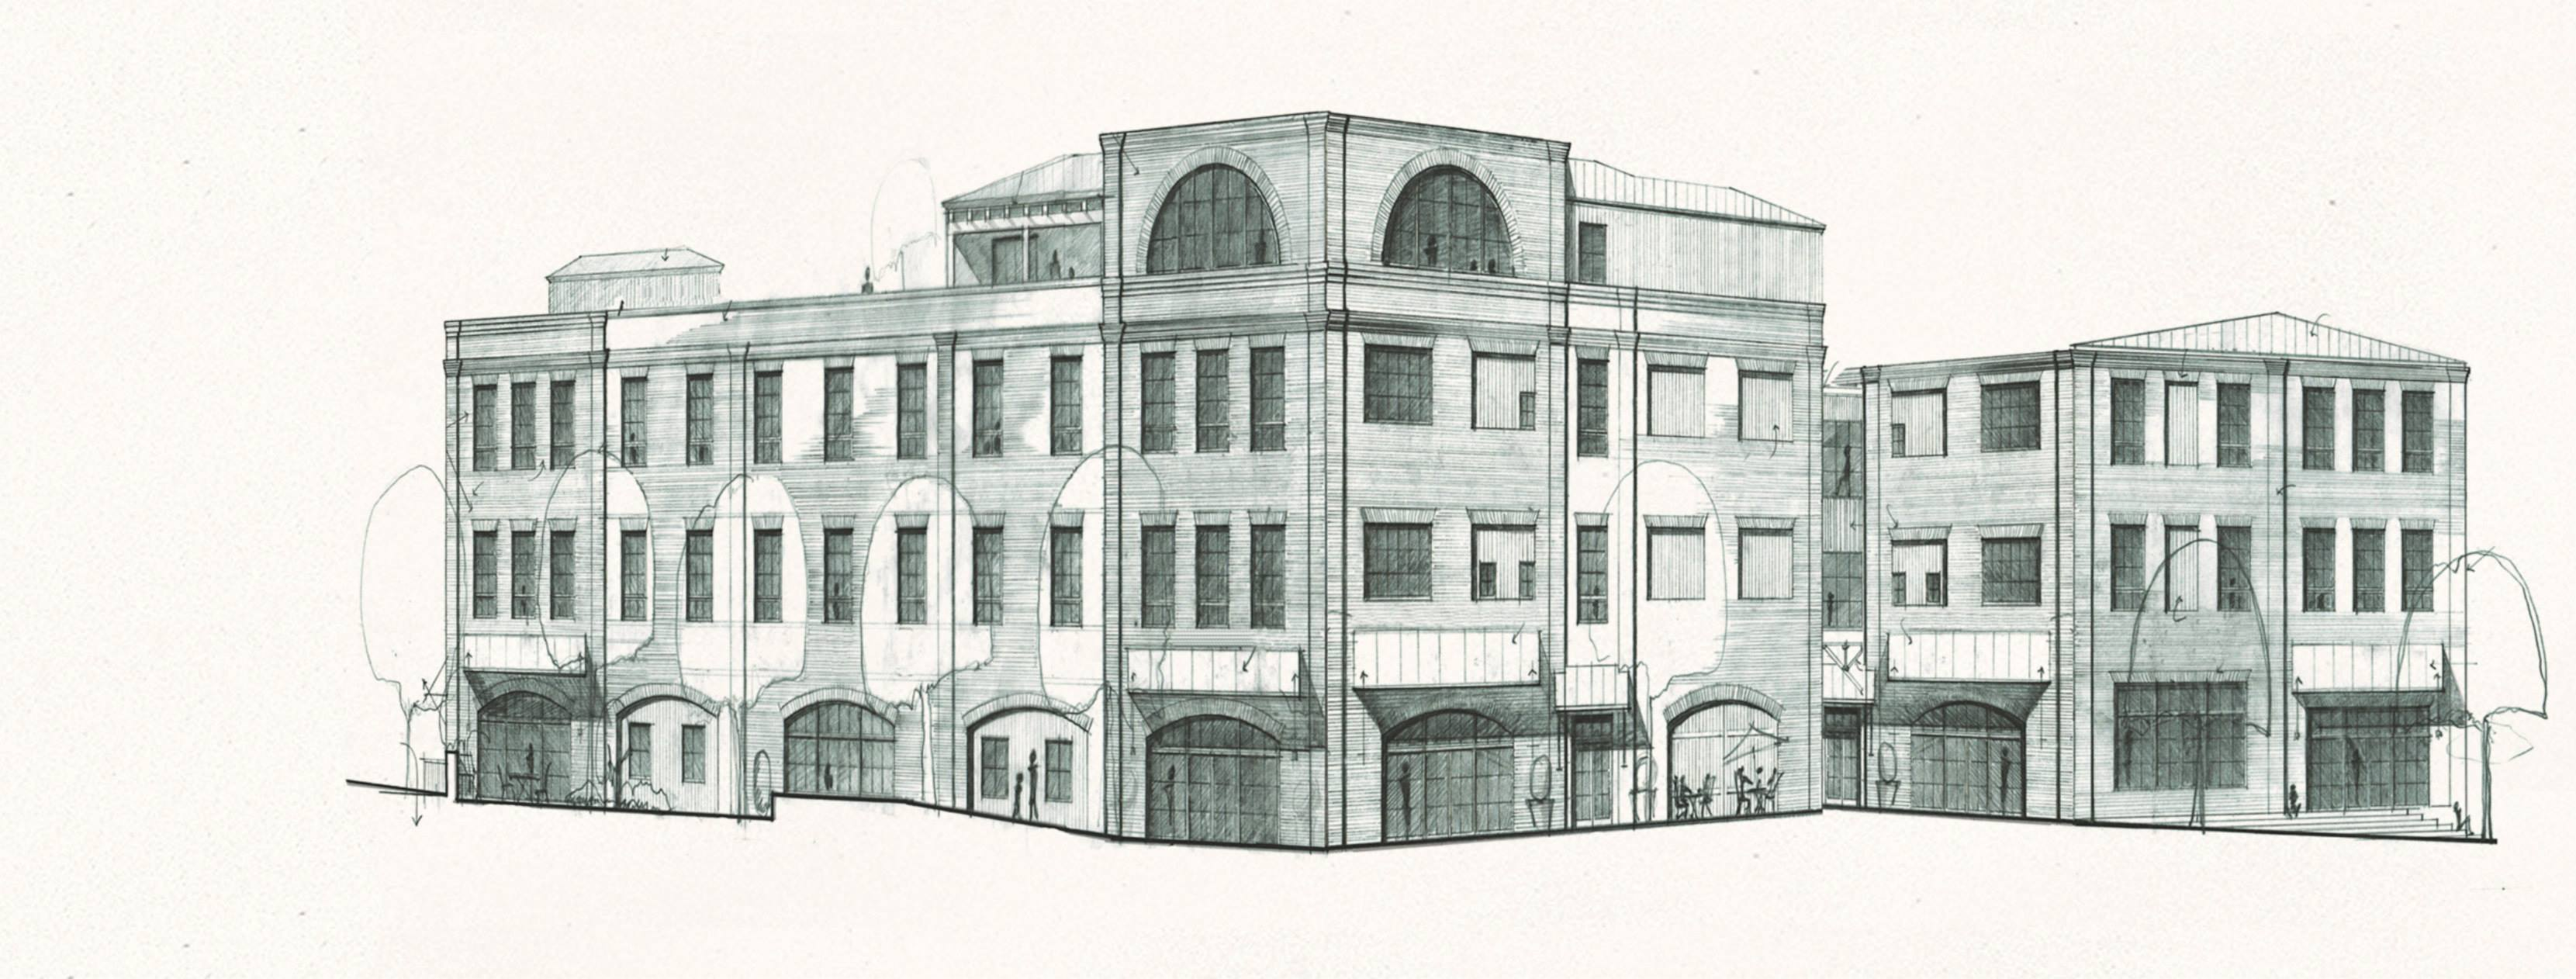 Drawing of Serenbe Textile Lofts